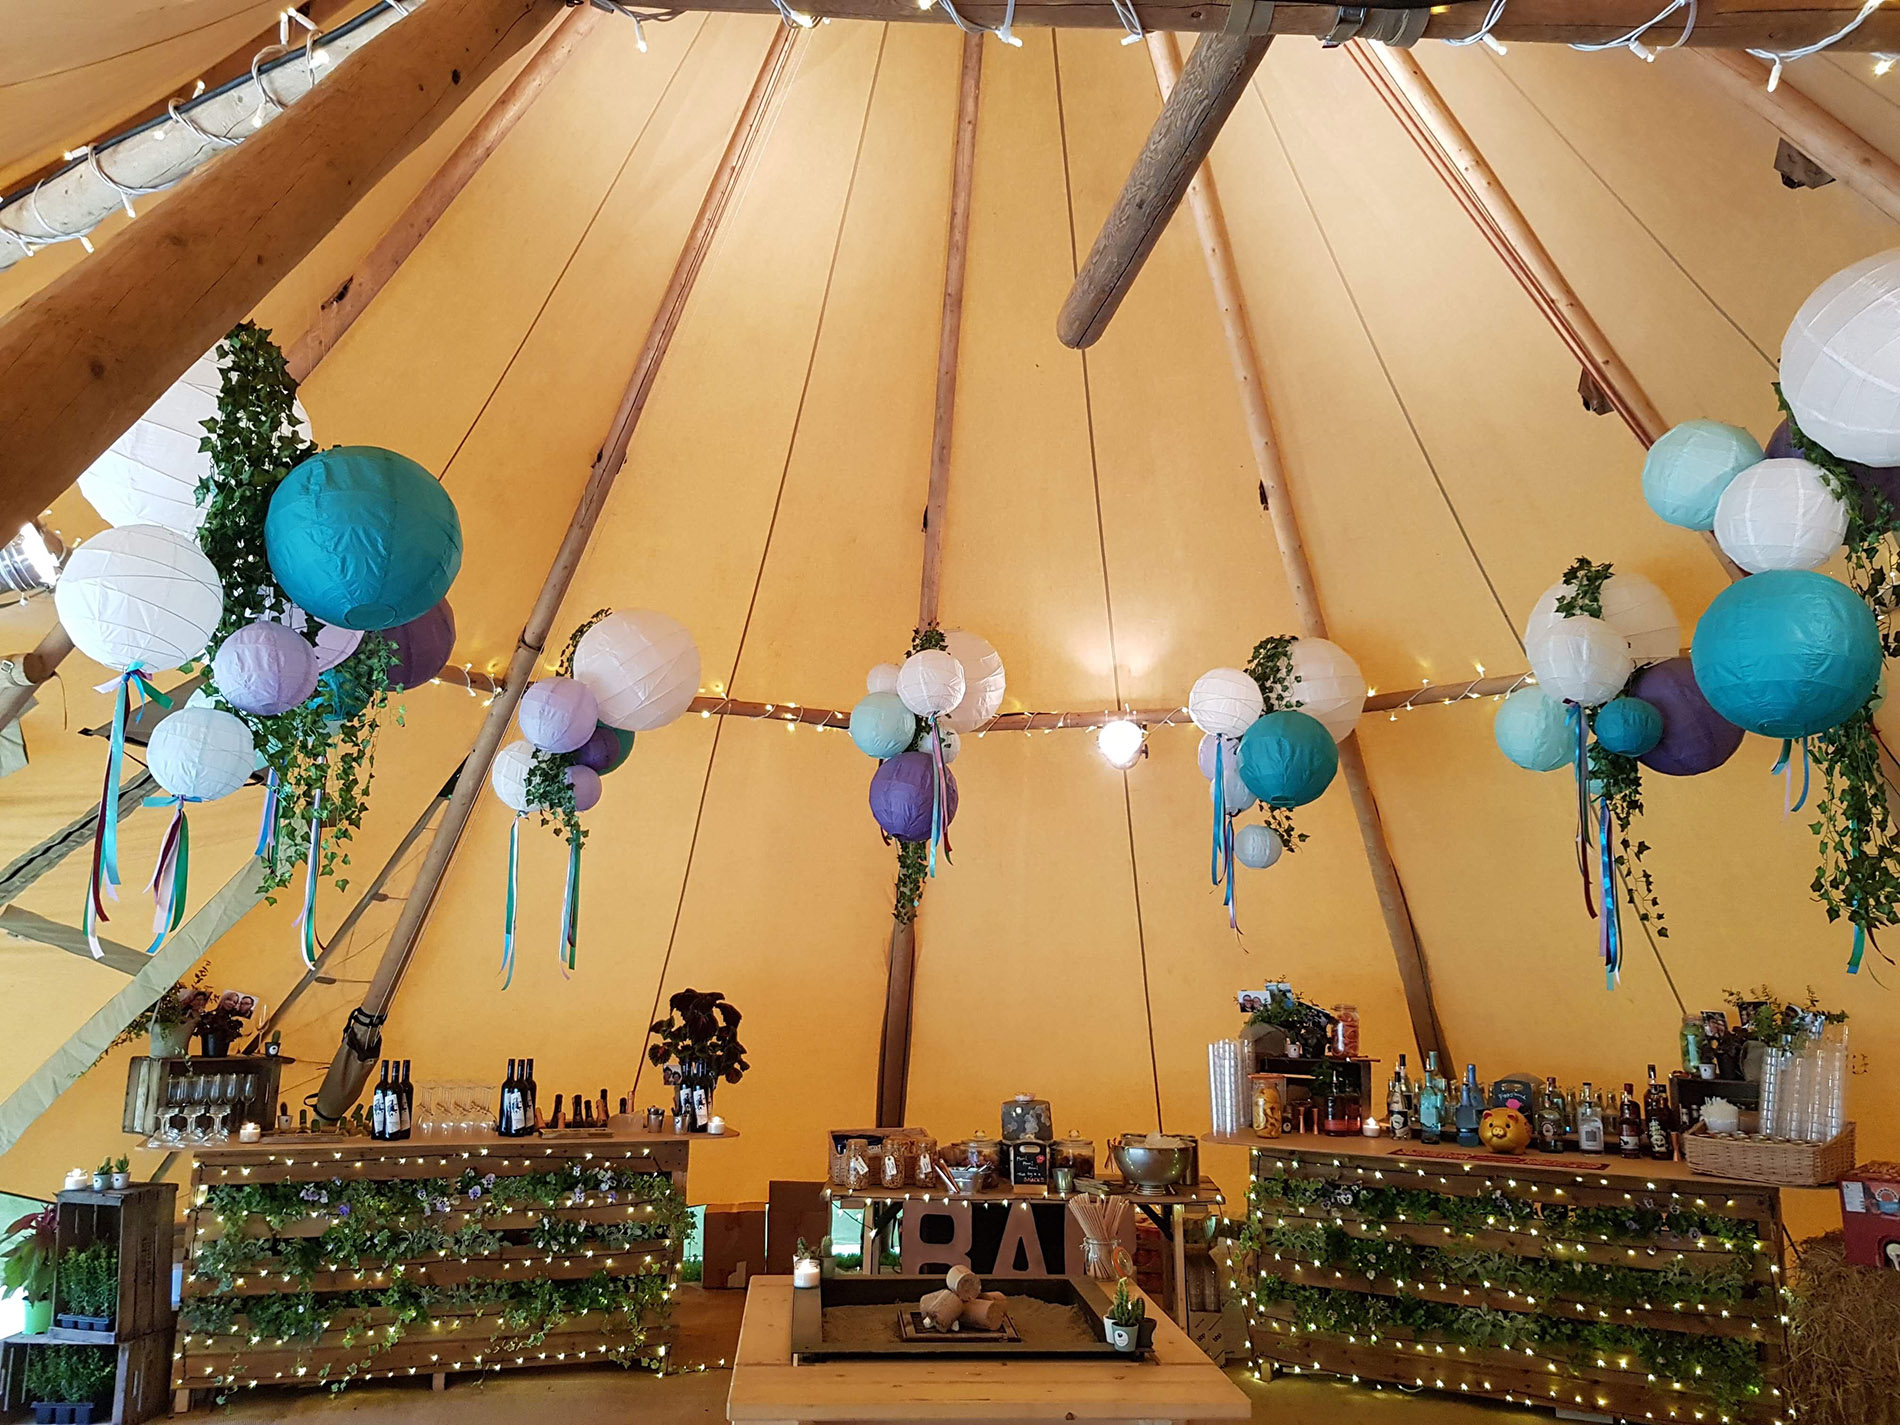 Interior of tipi with bar units